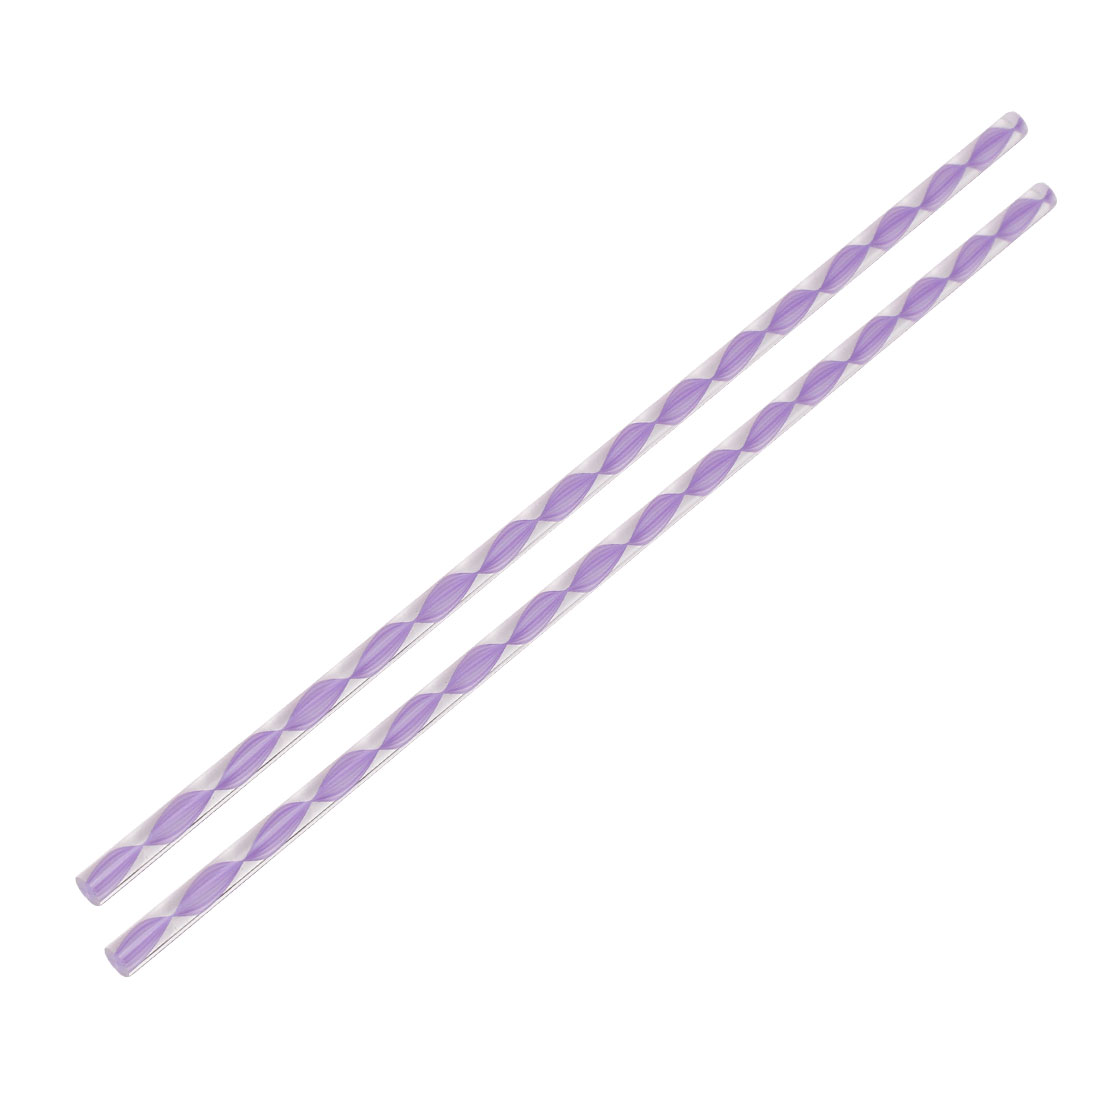 Twisted Light Purple Line Acrylic Round Rod PMMA Bar 250mmx6mm 2pcs